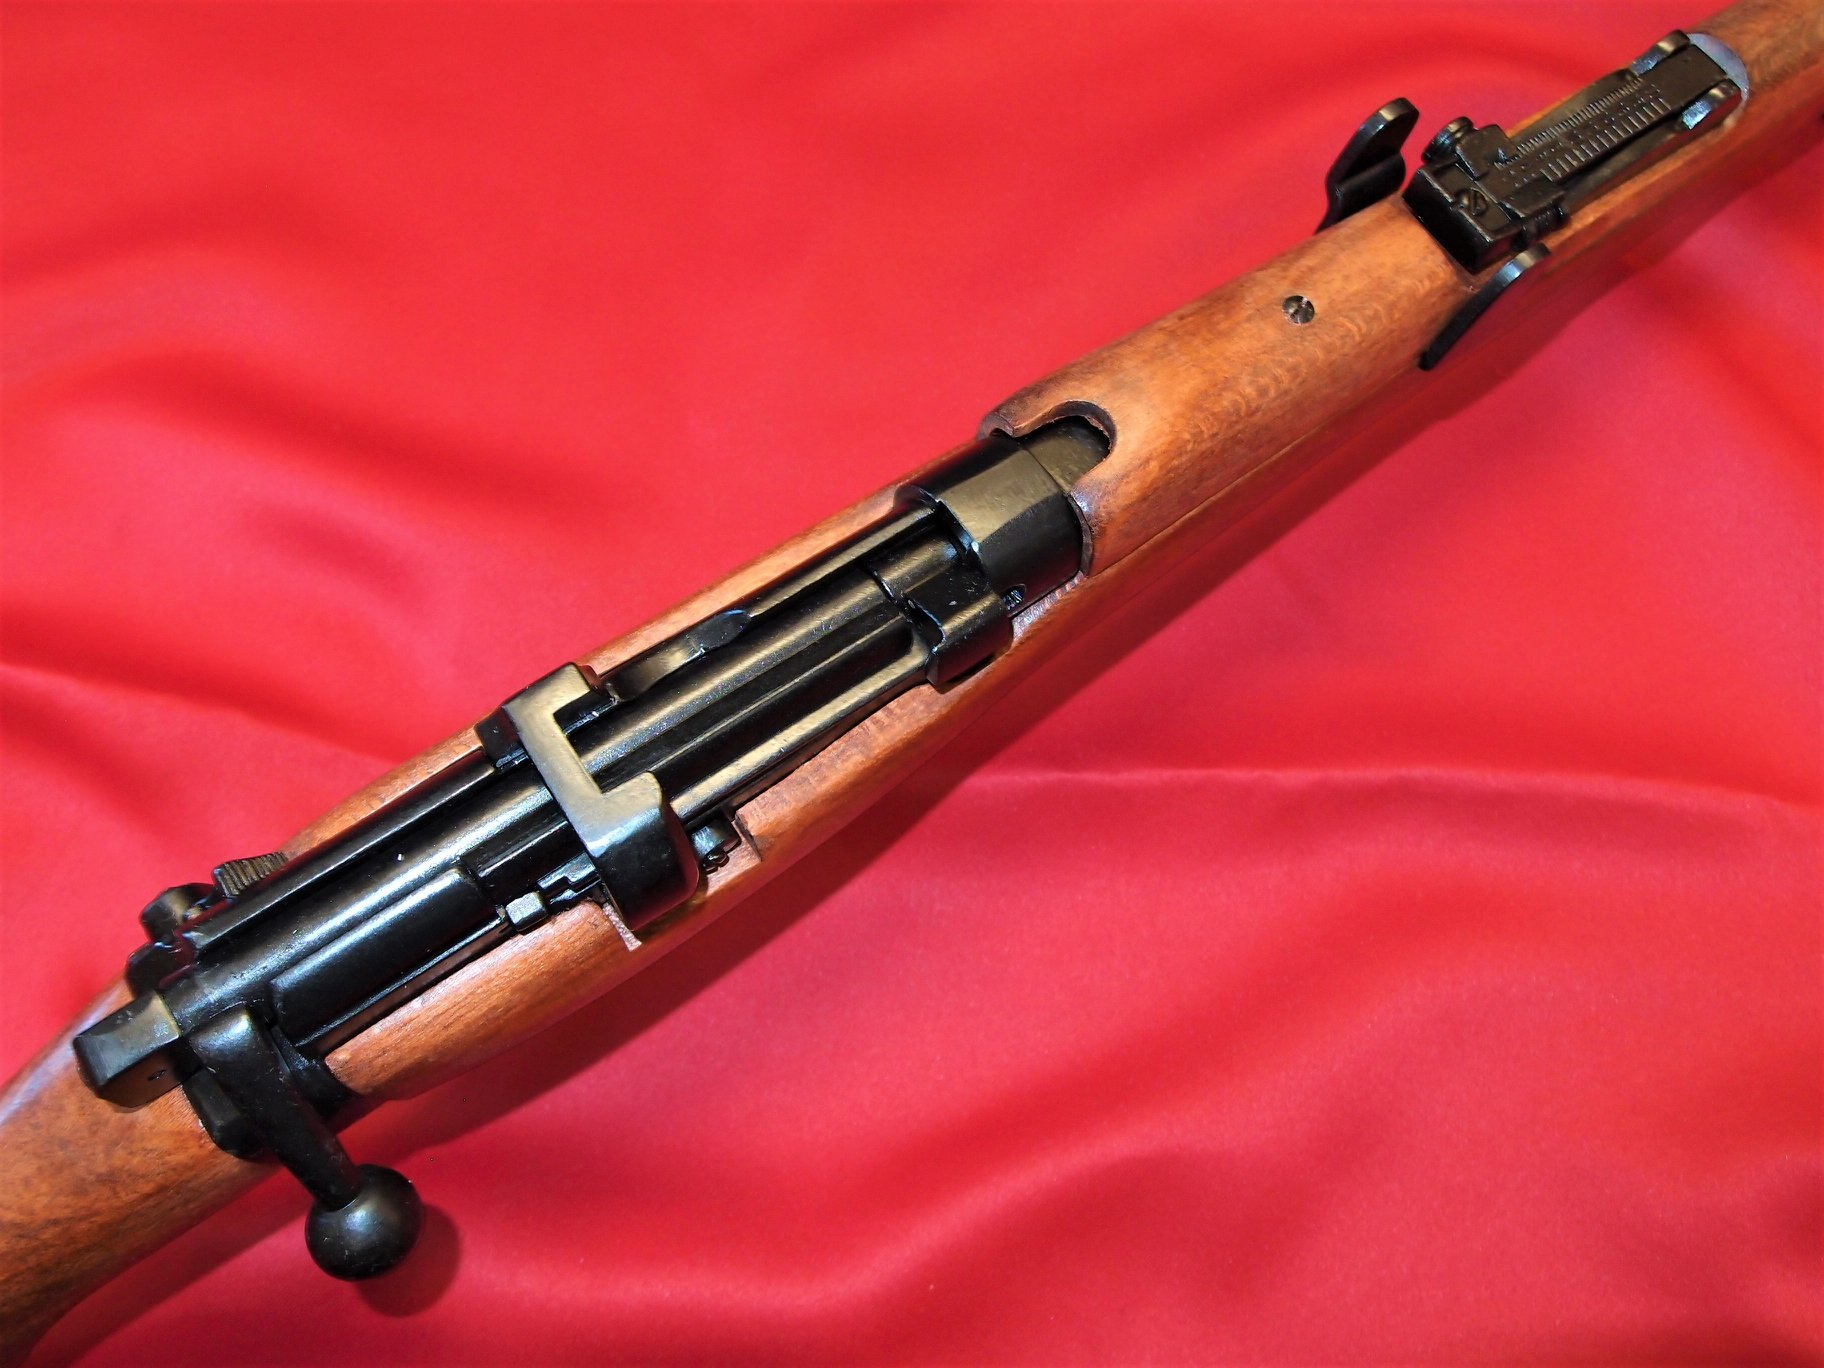 Replica Ww1 Ww2 303 Lee Enfield Smle Rifle By Denix Gun